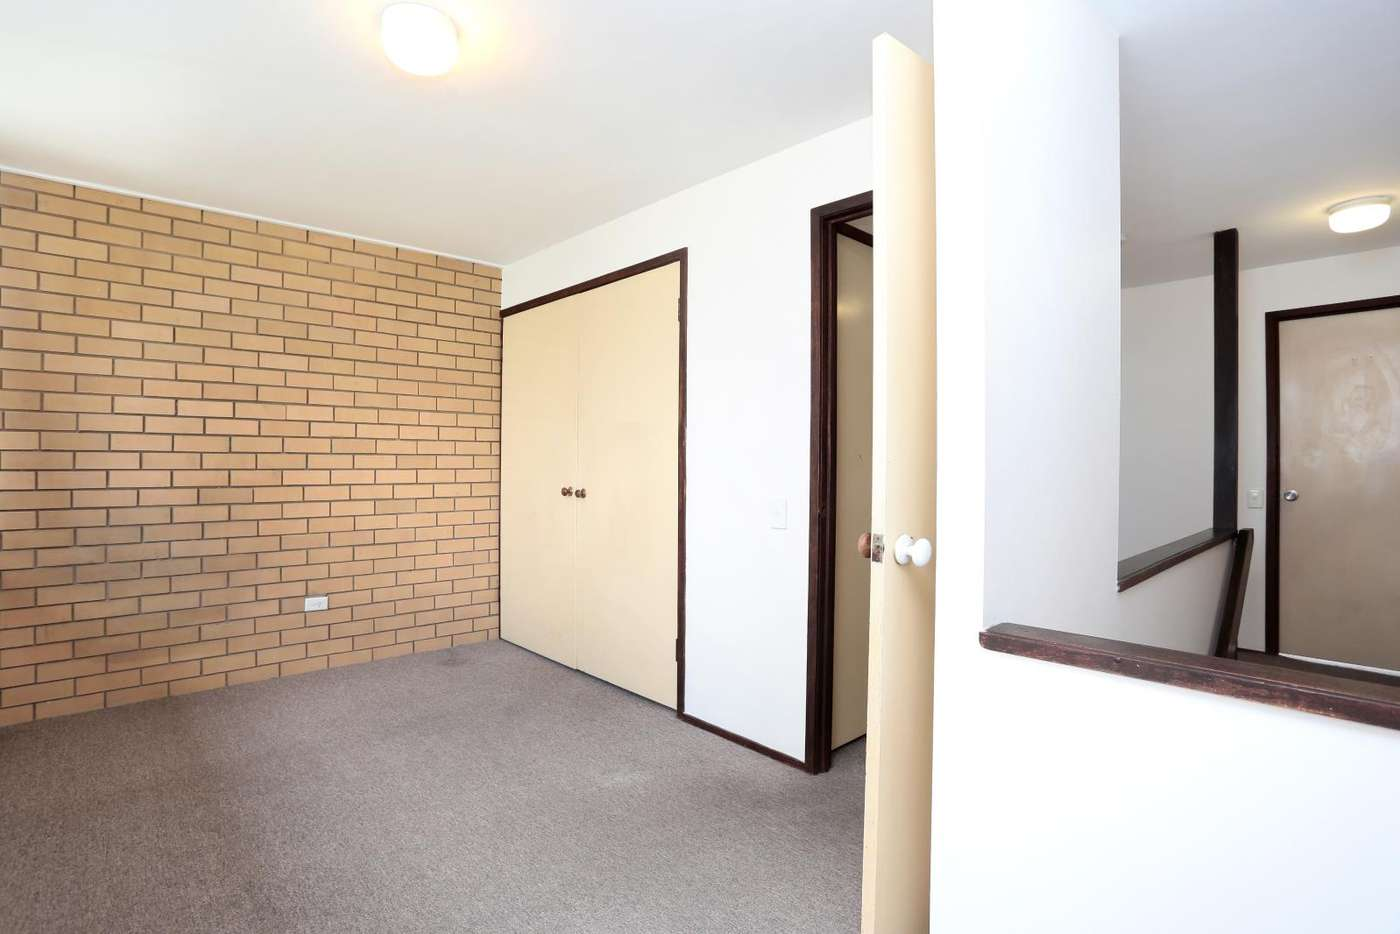 Sixth view of Homely unit listing, 6/16 Gailey Road, St Lucia QLD 4067